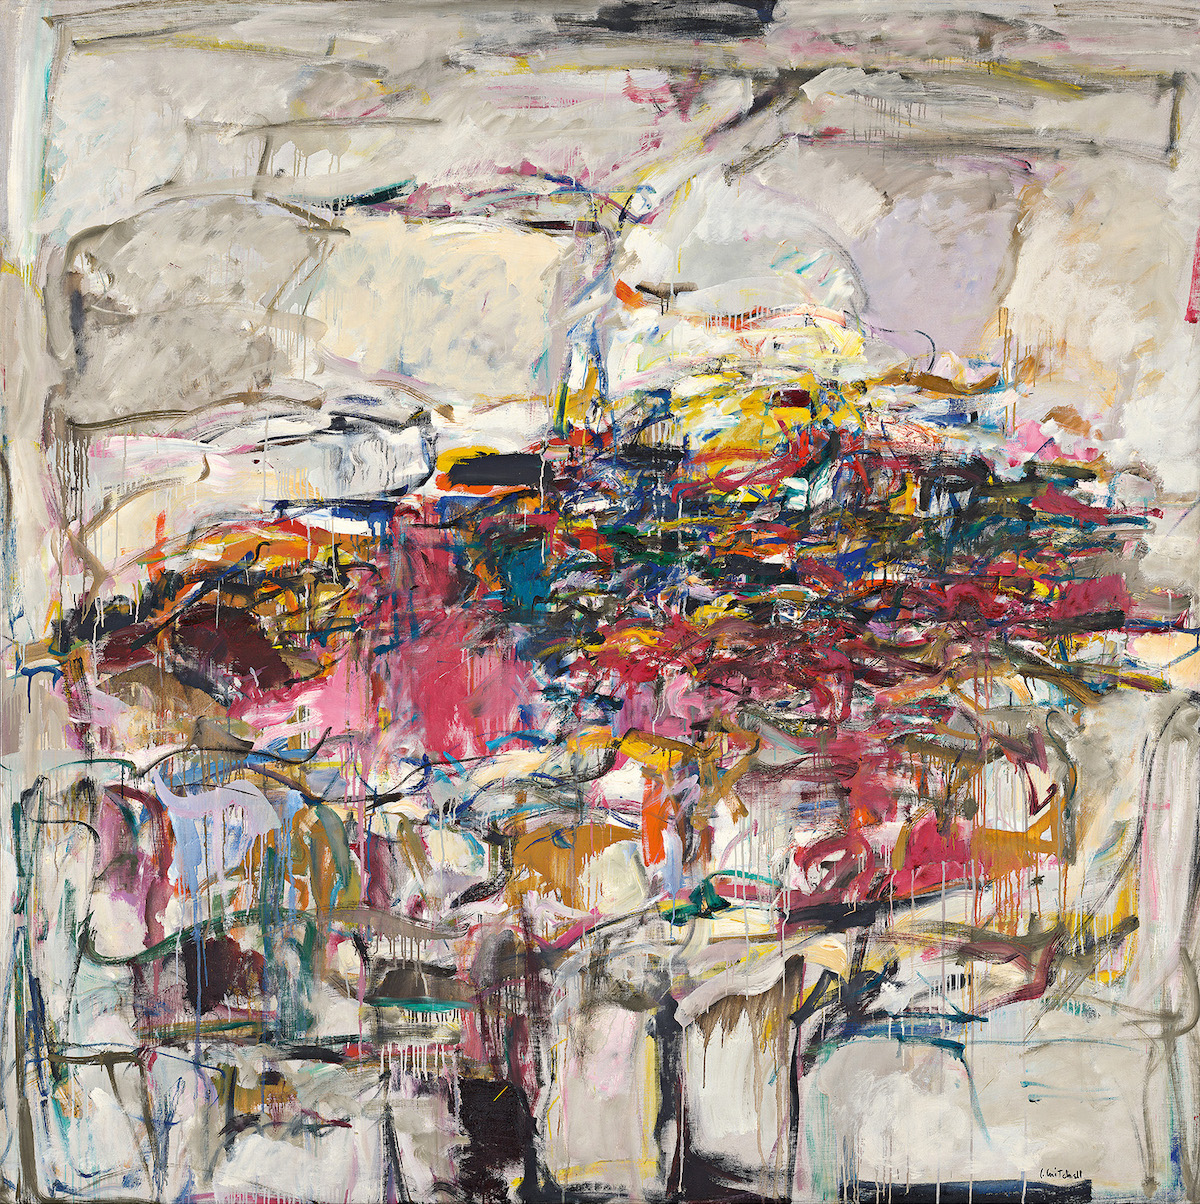 An abstract painting featuring a mass of red, blue, pink, and brown strokes in the center of an off-white background.